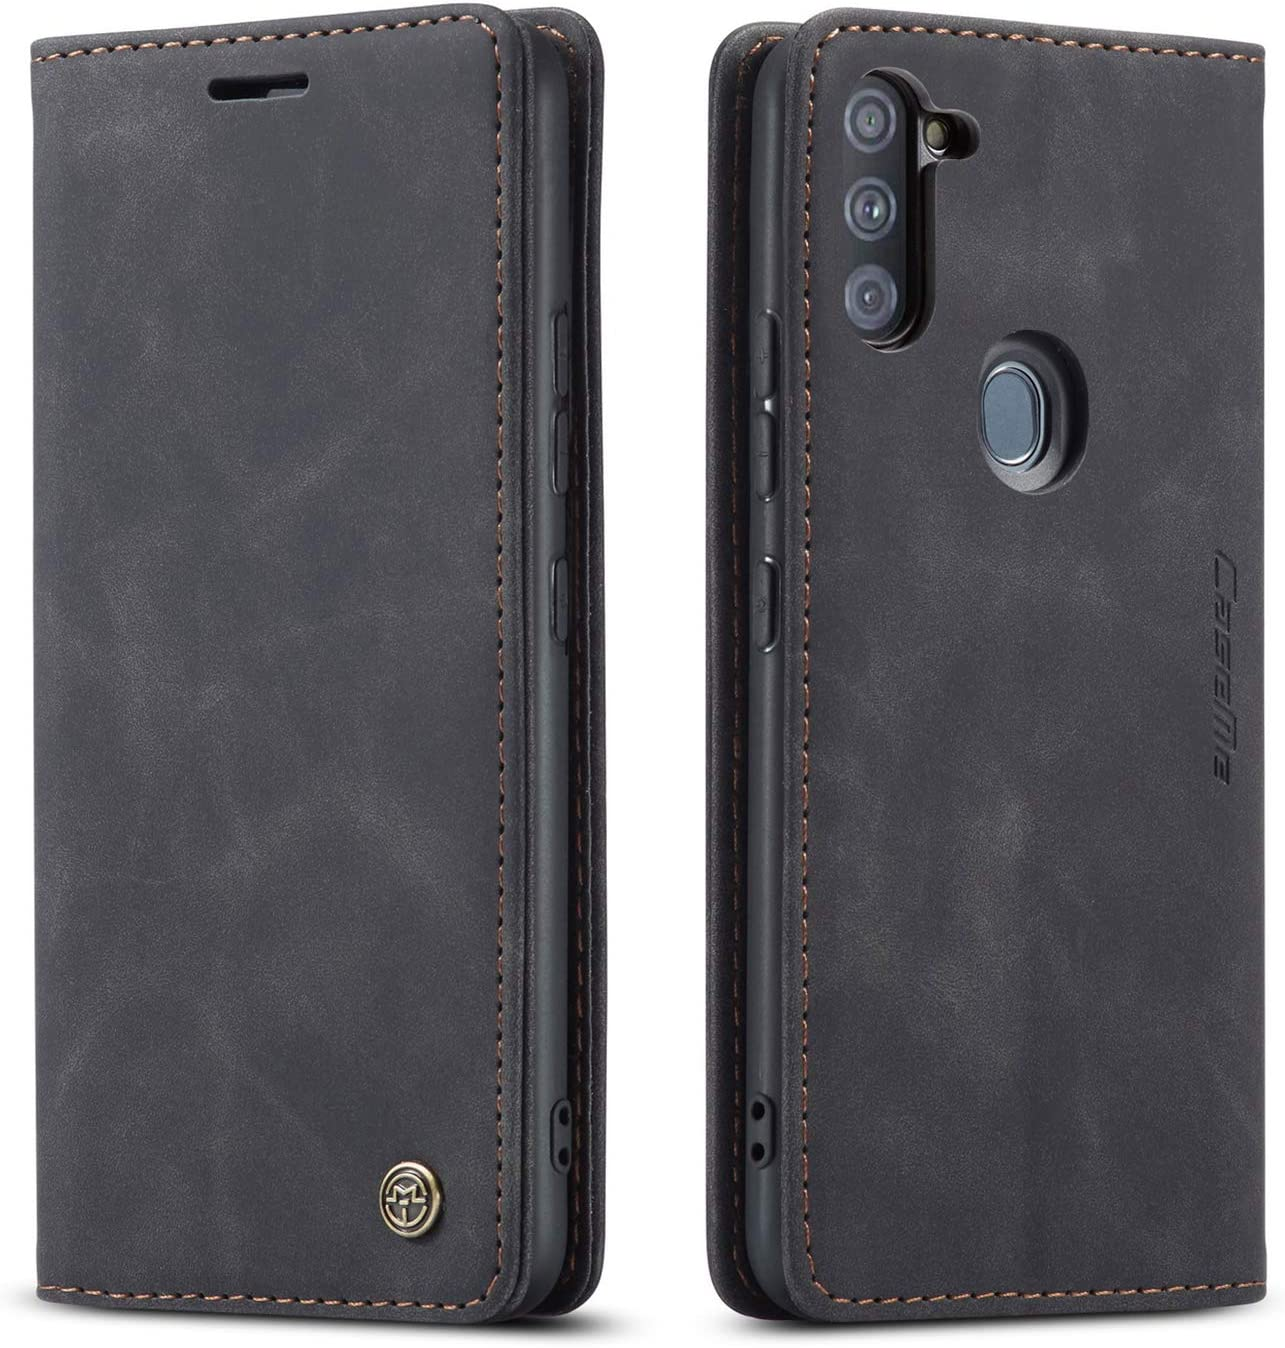 Samsung Galaxy A11 Case,Galaxy A11 Wallet Case with Card Holder,Magnetic Stand Leather Flip Case Cover for Samsung Galaxy A11(2020) 6.4 inch (Black)